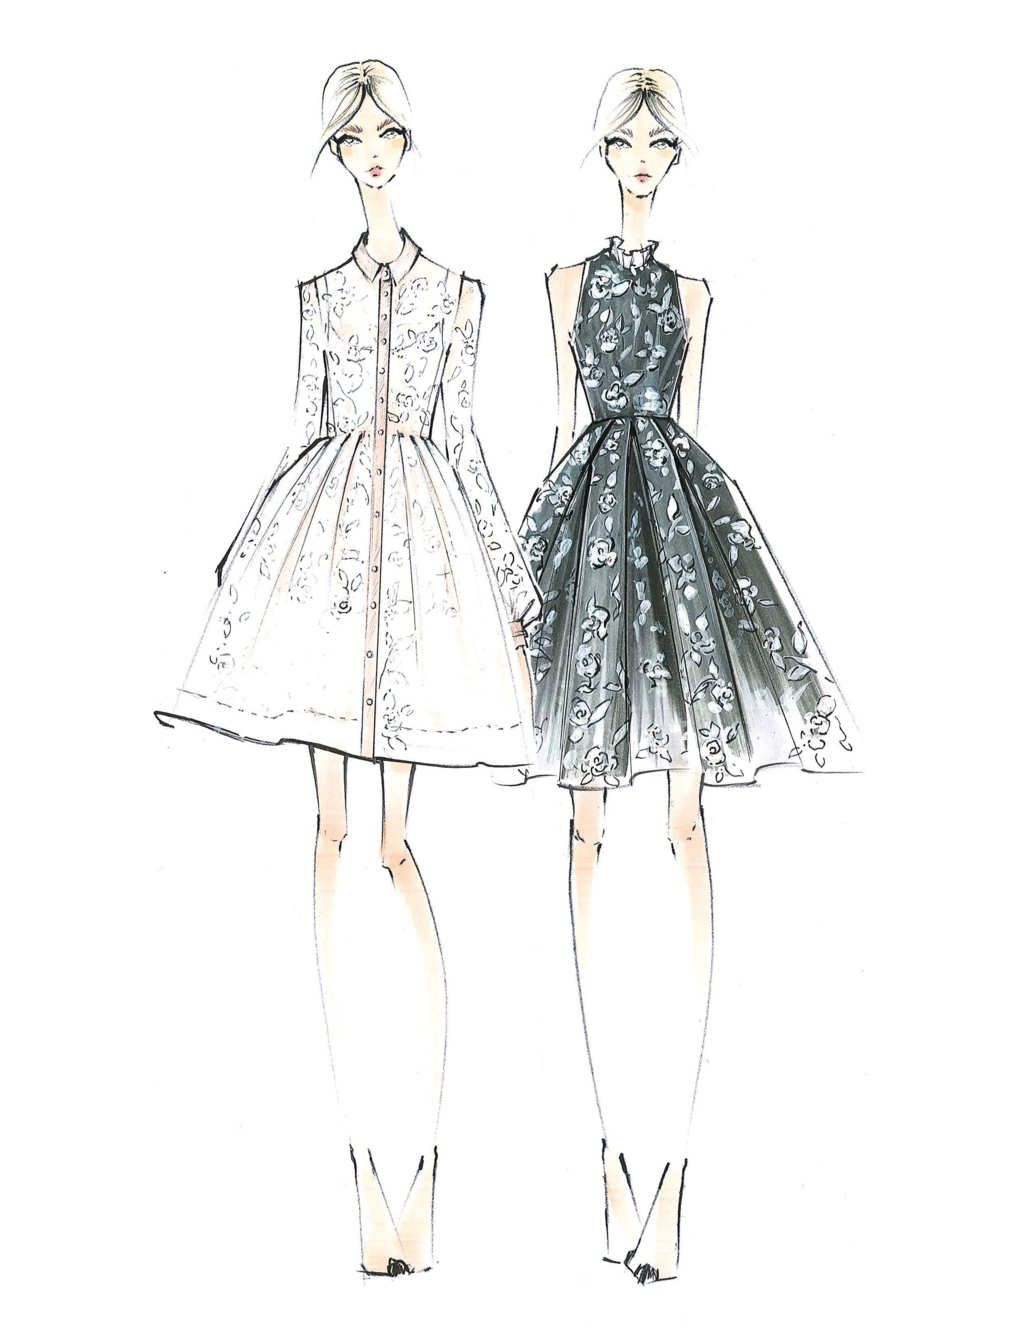 Image Wallpaper » Fashion Sketches